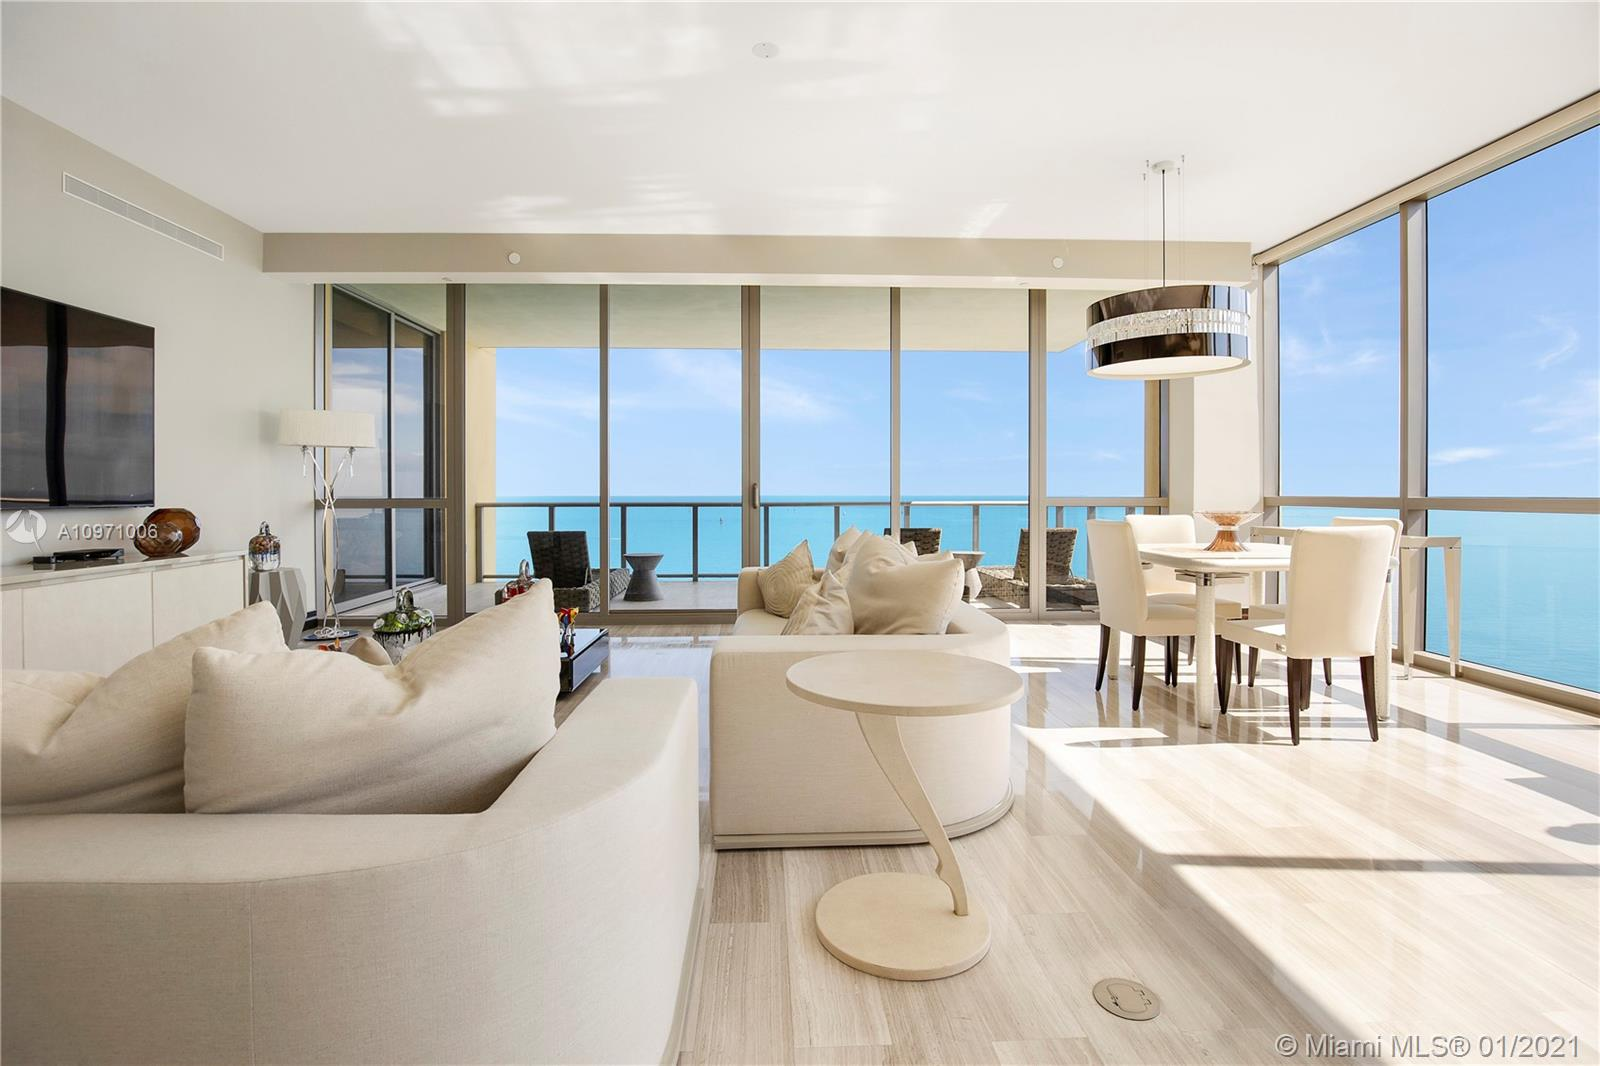 Reduced to SELL! Gorgeous Residence at the Exclusive Mansions at Acqualina featuring 4 Beds, 6.5 baths and 4,609 sqft of living area. Unbelievable Direct Ocean and City views from the 30th Floor, Unit Upgraded with FENDI CASA Furniture Package worth $550,000. Don't miss this opportunity to enjoy the Lavish lifestyle including endless amenities and Five Star Service. Call LA for information.